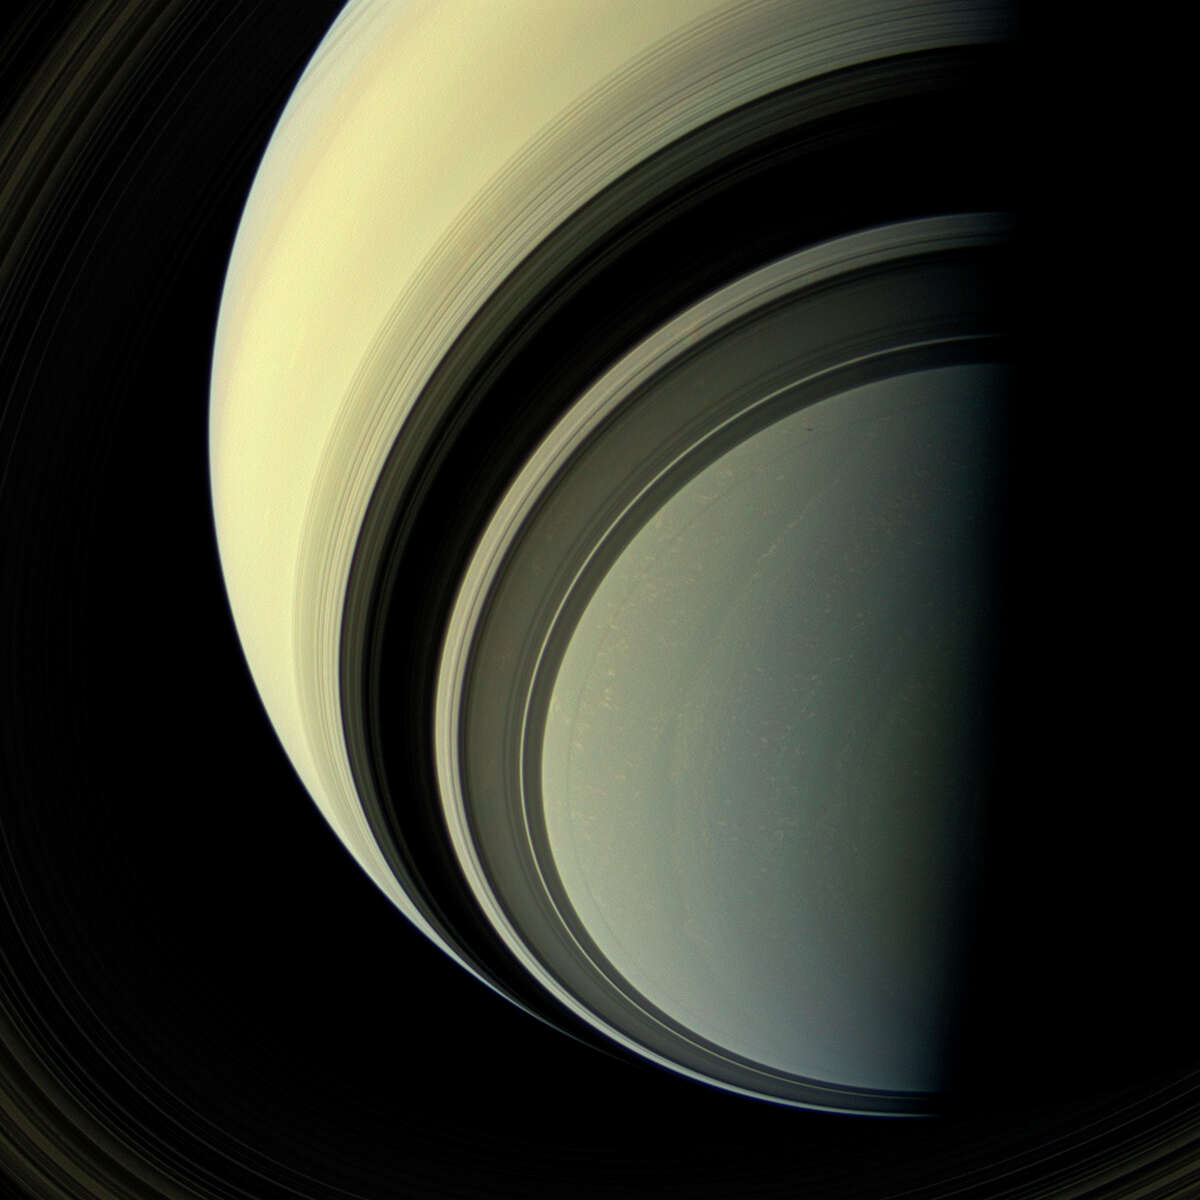 This July 29, 2013 image provided by NASA shows that Winter is approaching in the southern hemisphere of Saturn and with this cold season has come the familiar blue hue that was present in the northern winter hemisphere at the start of NASA's Cassini mission. This view looks toward the non-illuminated side of the rings from about 44 degrees below the ring plane. Images taken using red, green and blue spectral filters were combined to create this natural color view. The images were taken with the Cassini spacecraft wide-angle camera. The Cassini-Huygens mission is a cooperative project of NASA, the European Space Agency and the Italian Space Agency. (AP Photo/NASA/JPL-Caltech/Space Science Institute) ORG XMIT: LA113